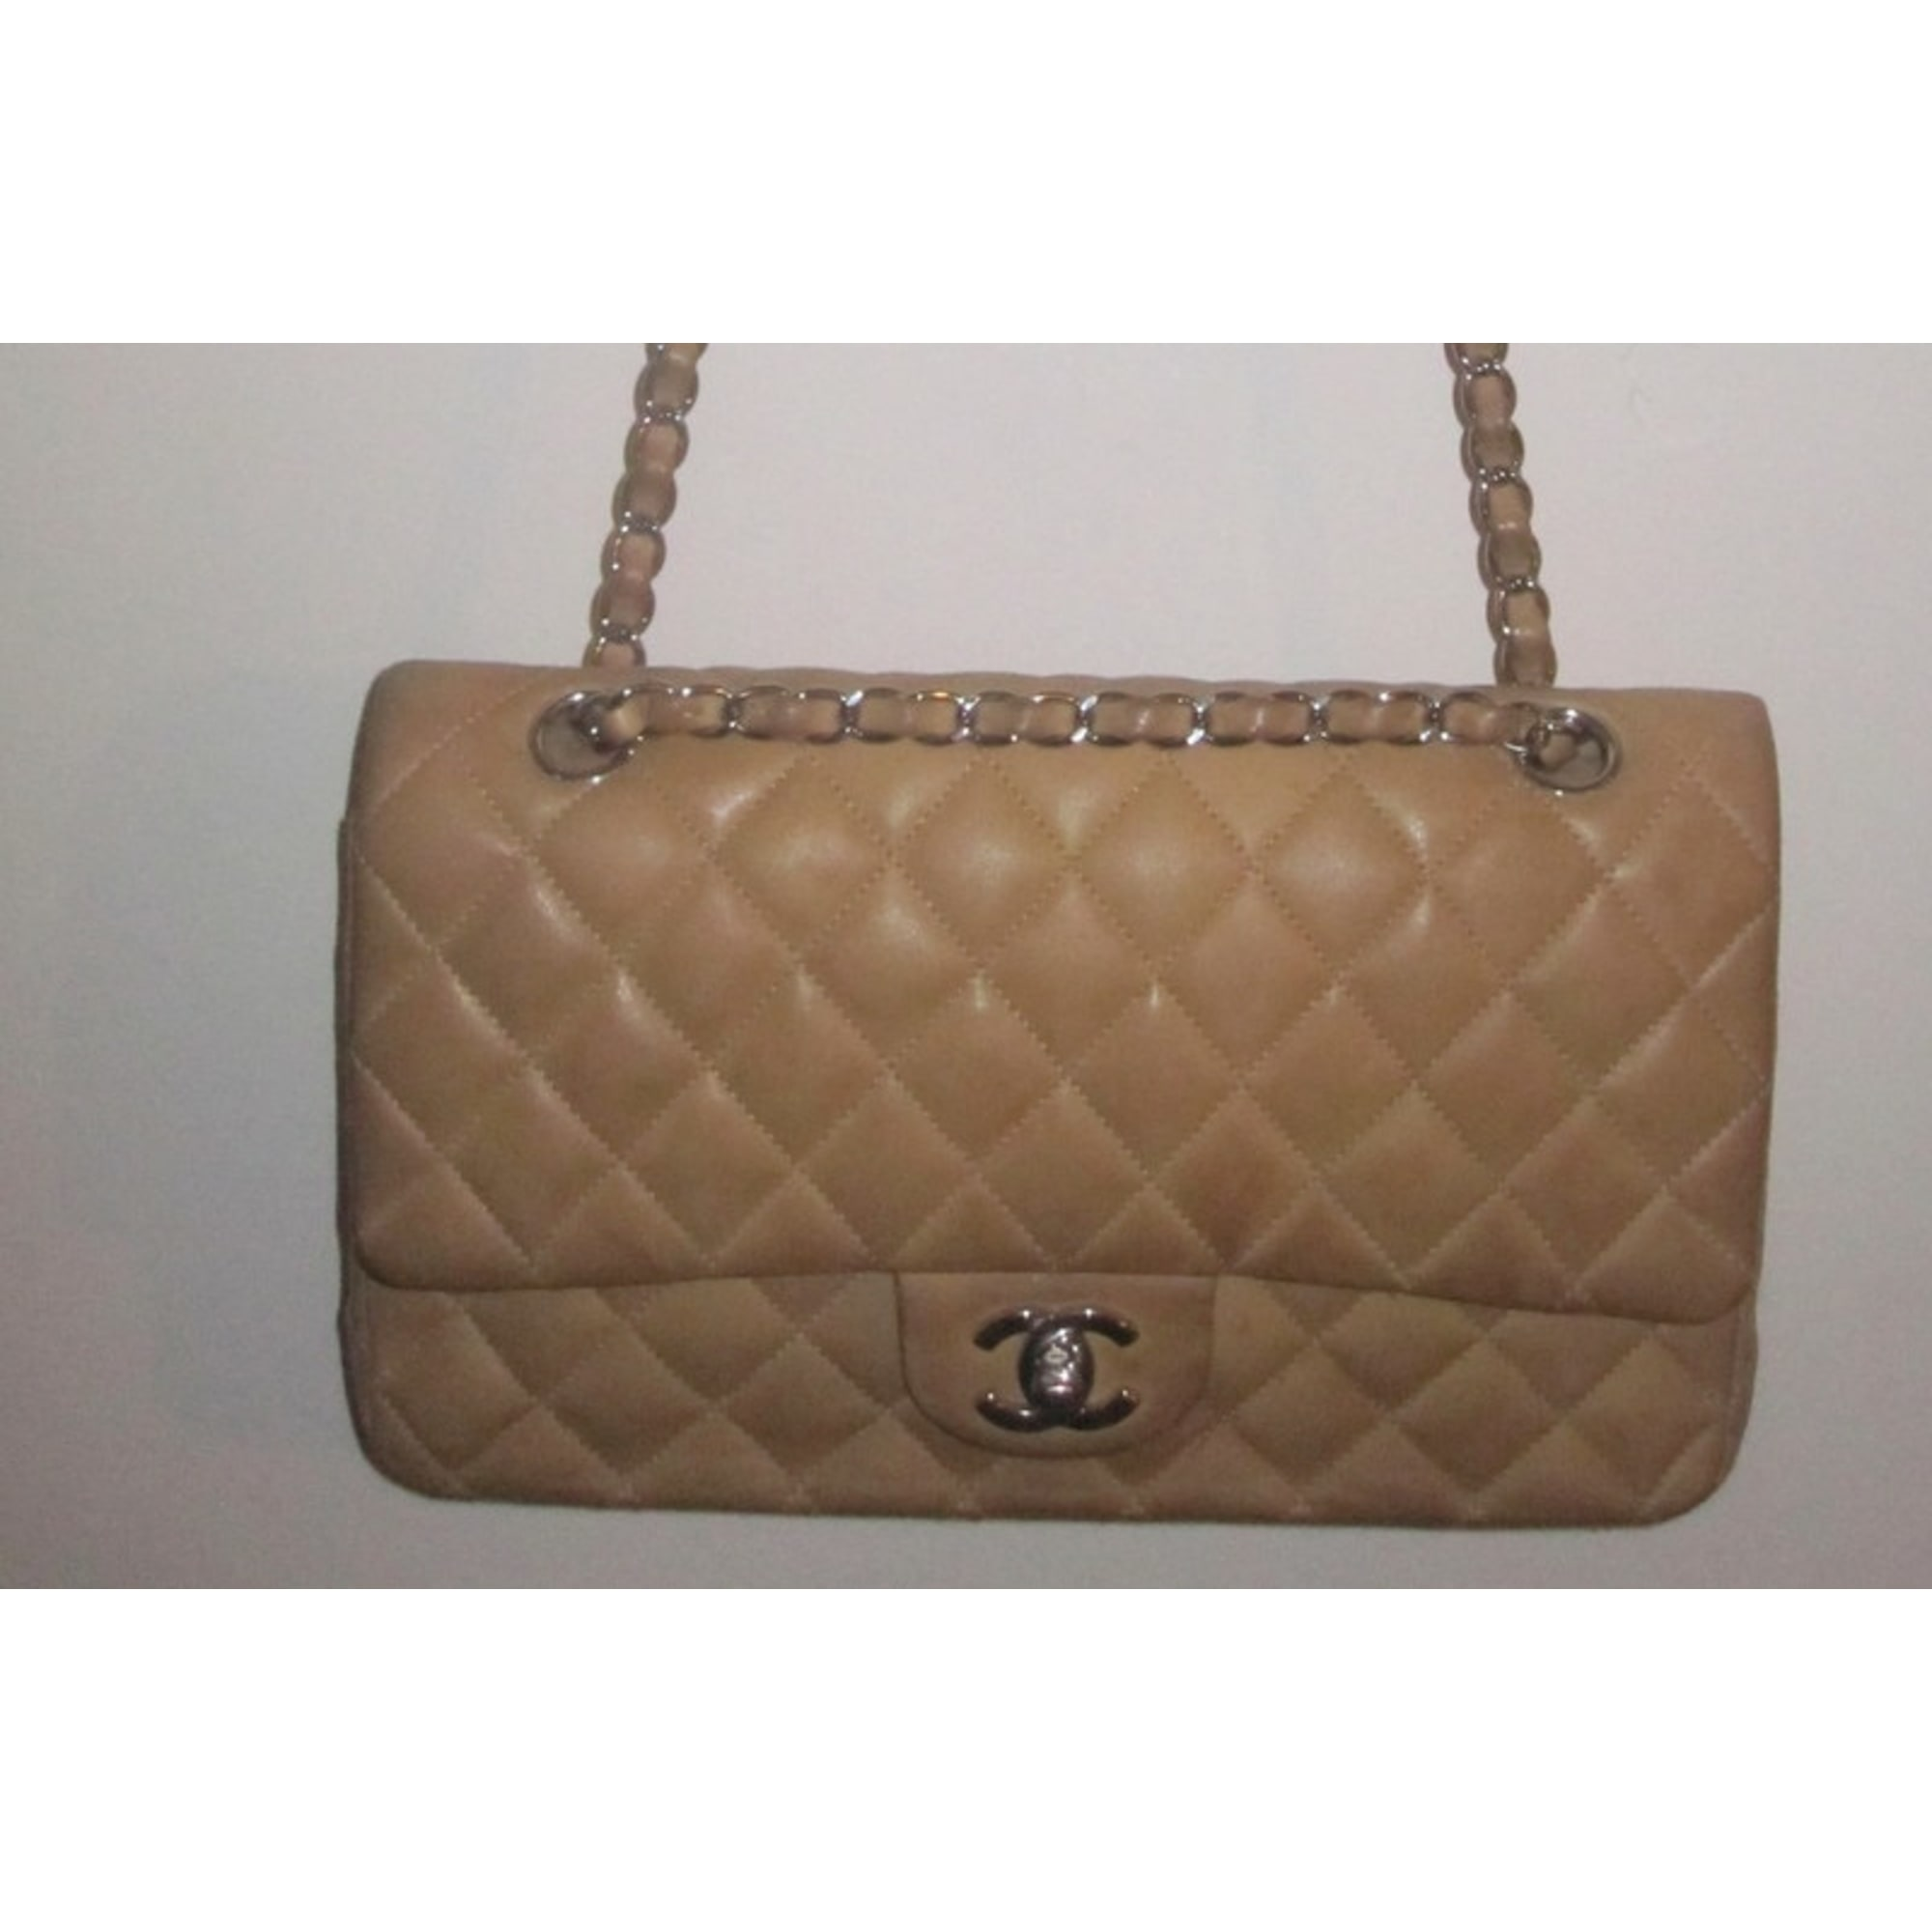 4b537bb9a3 Sac à main en cuir CHANEL beige vendu par Big pie92439 - 1227490